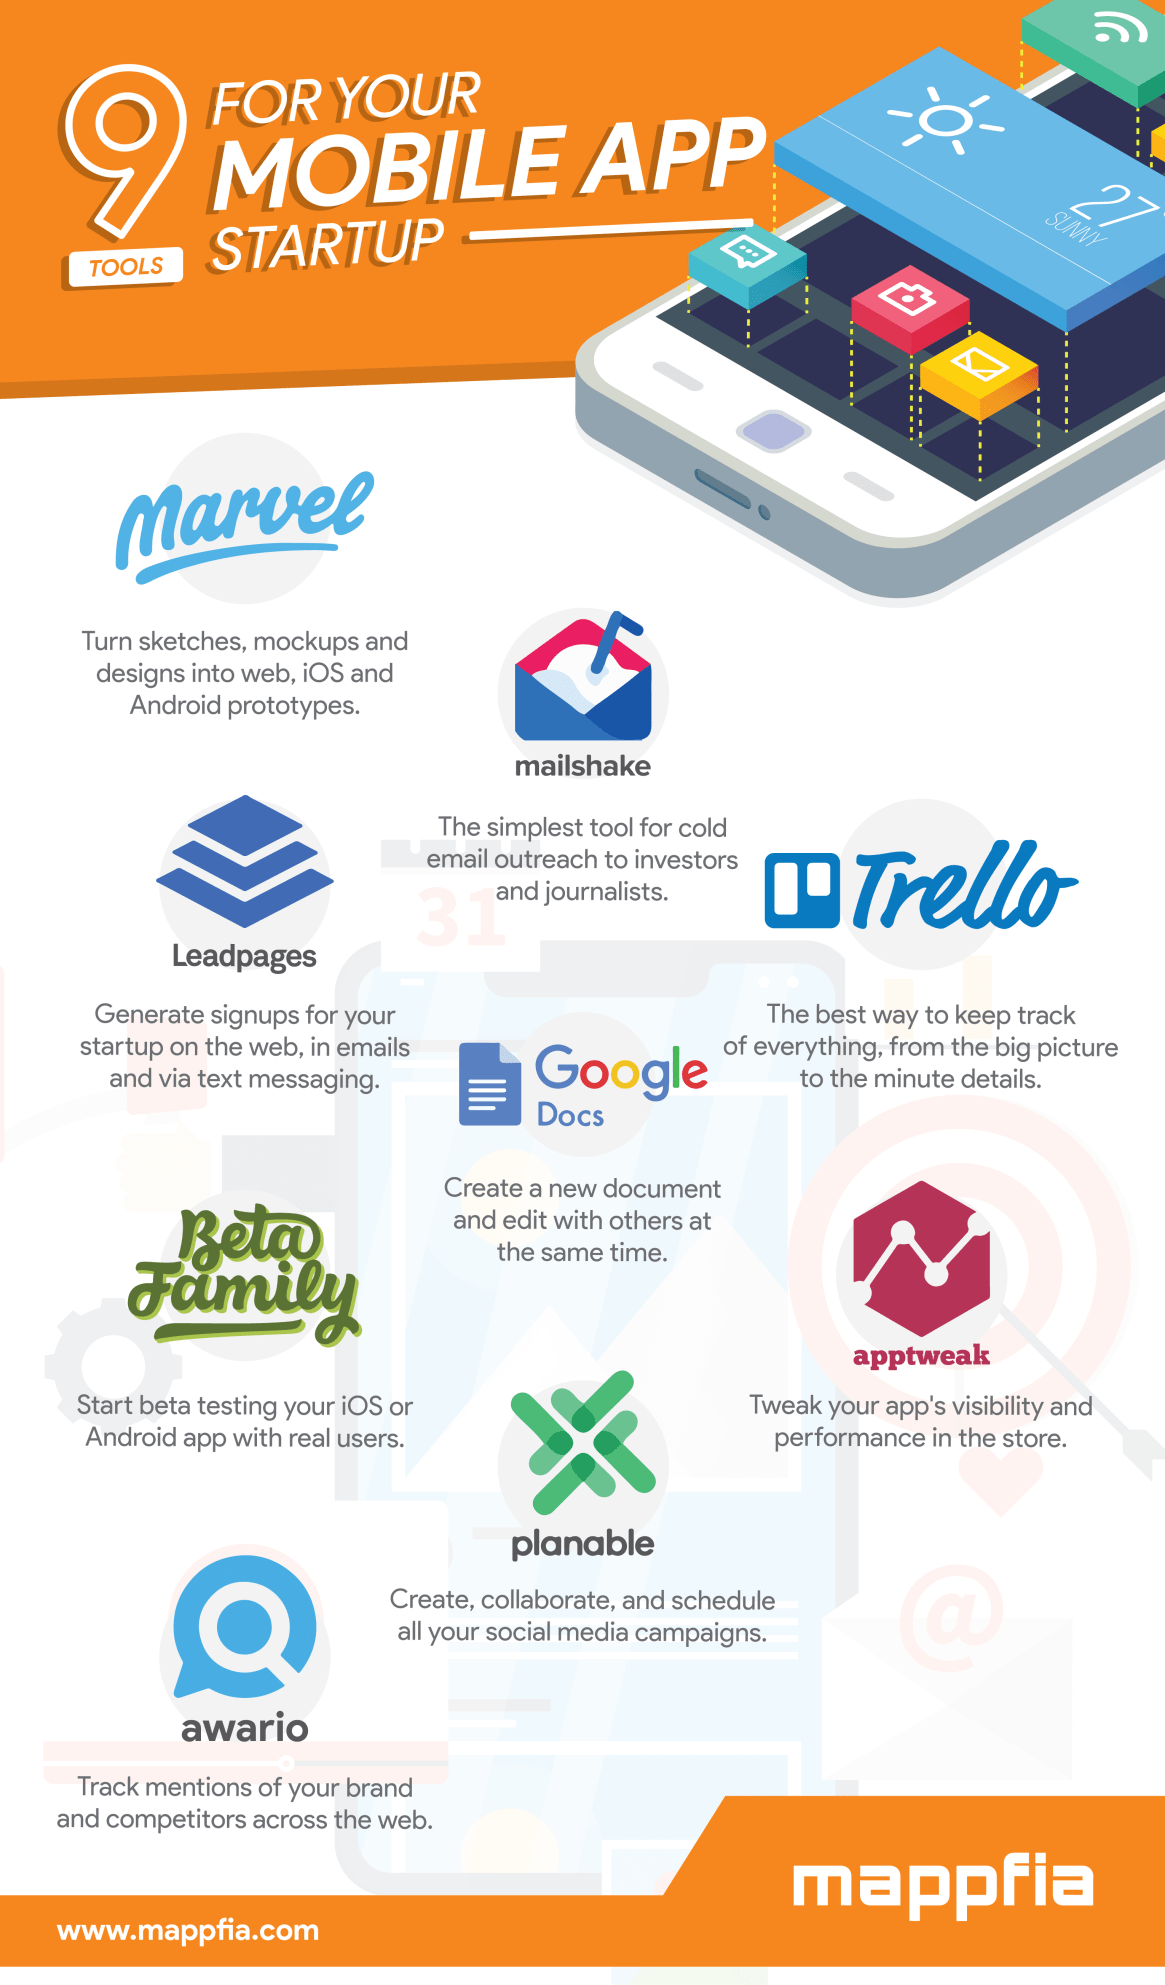 9 Tools for Your Mobile App Startup